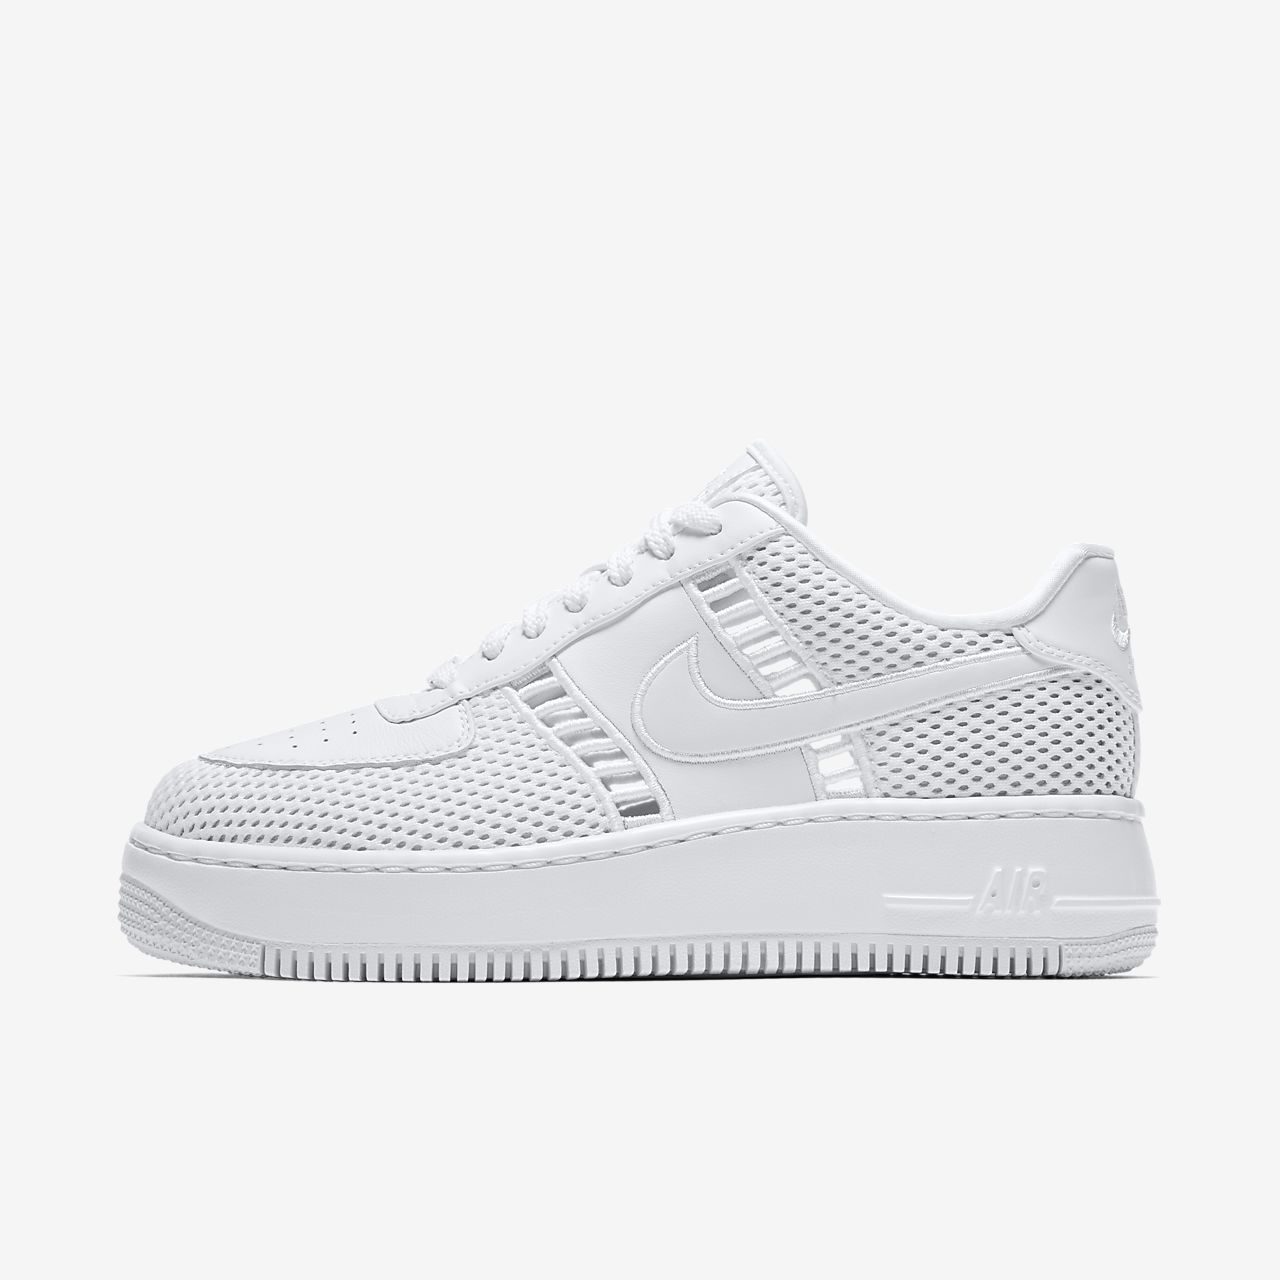 ... Chaussure Nike Air Force 1 Upstep SI pour Femme